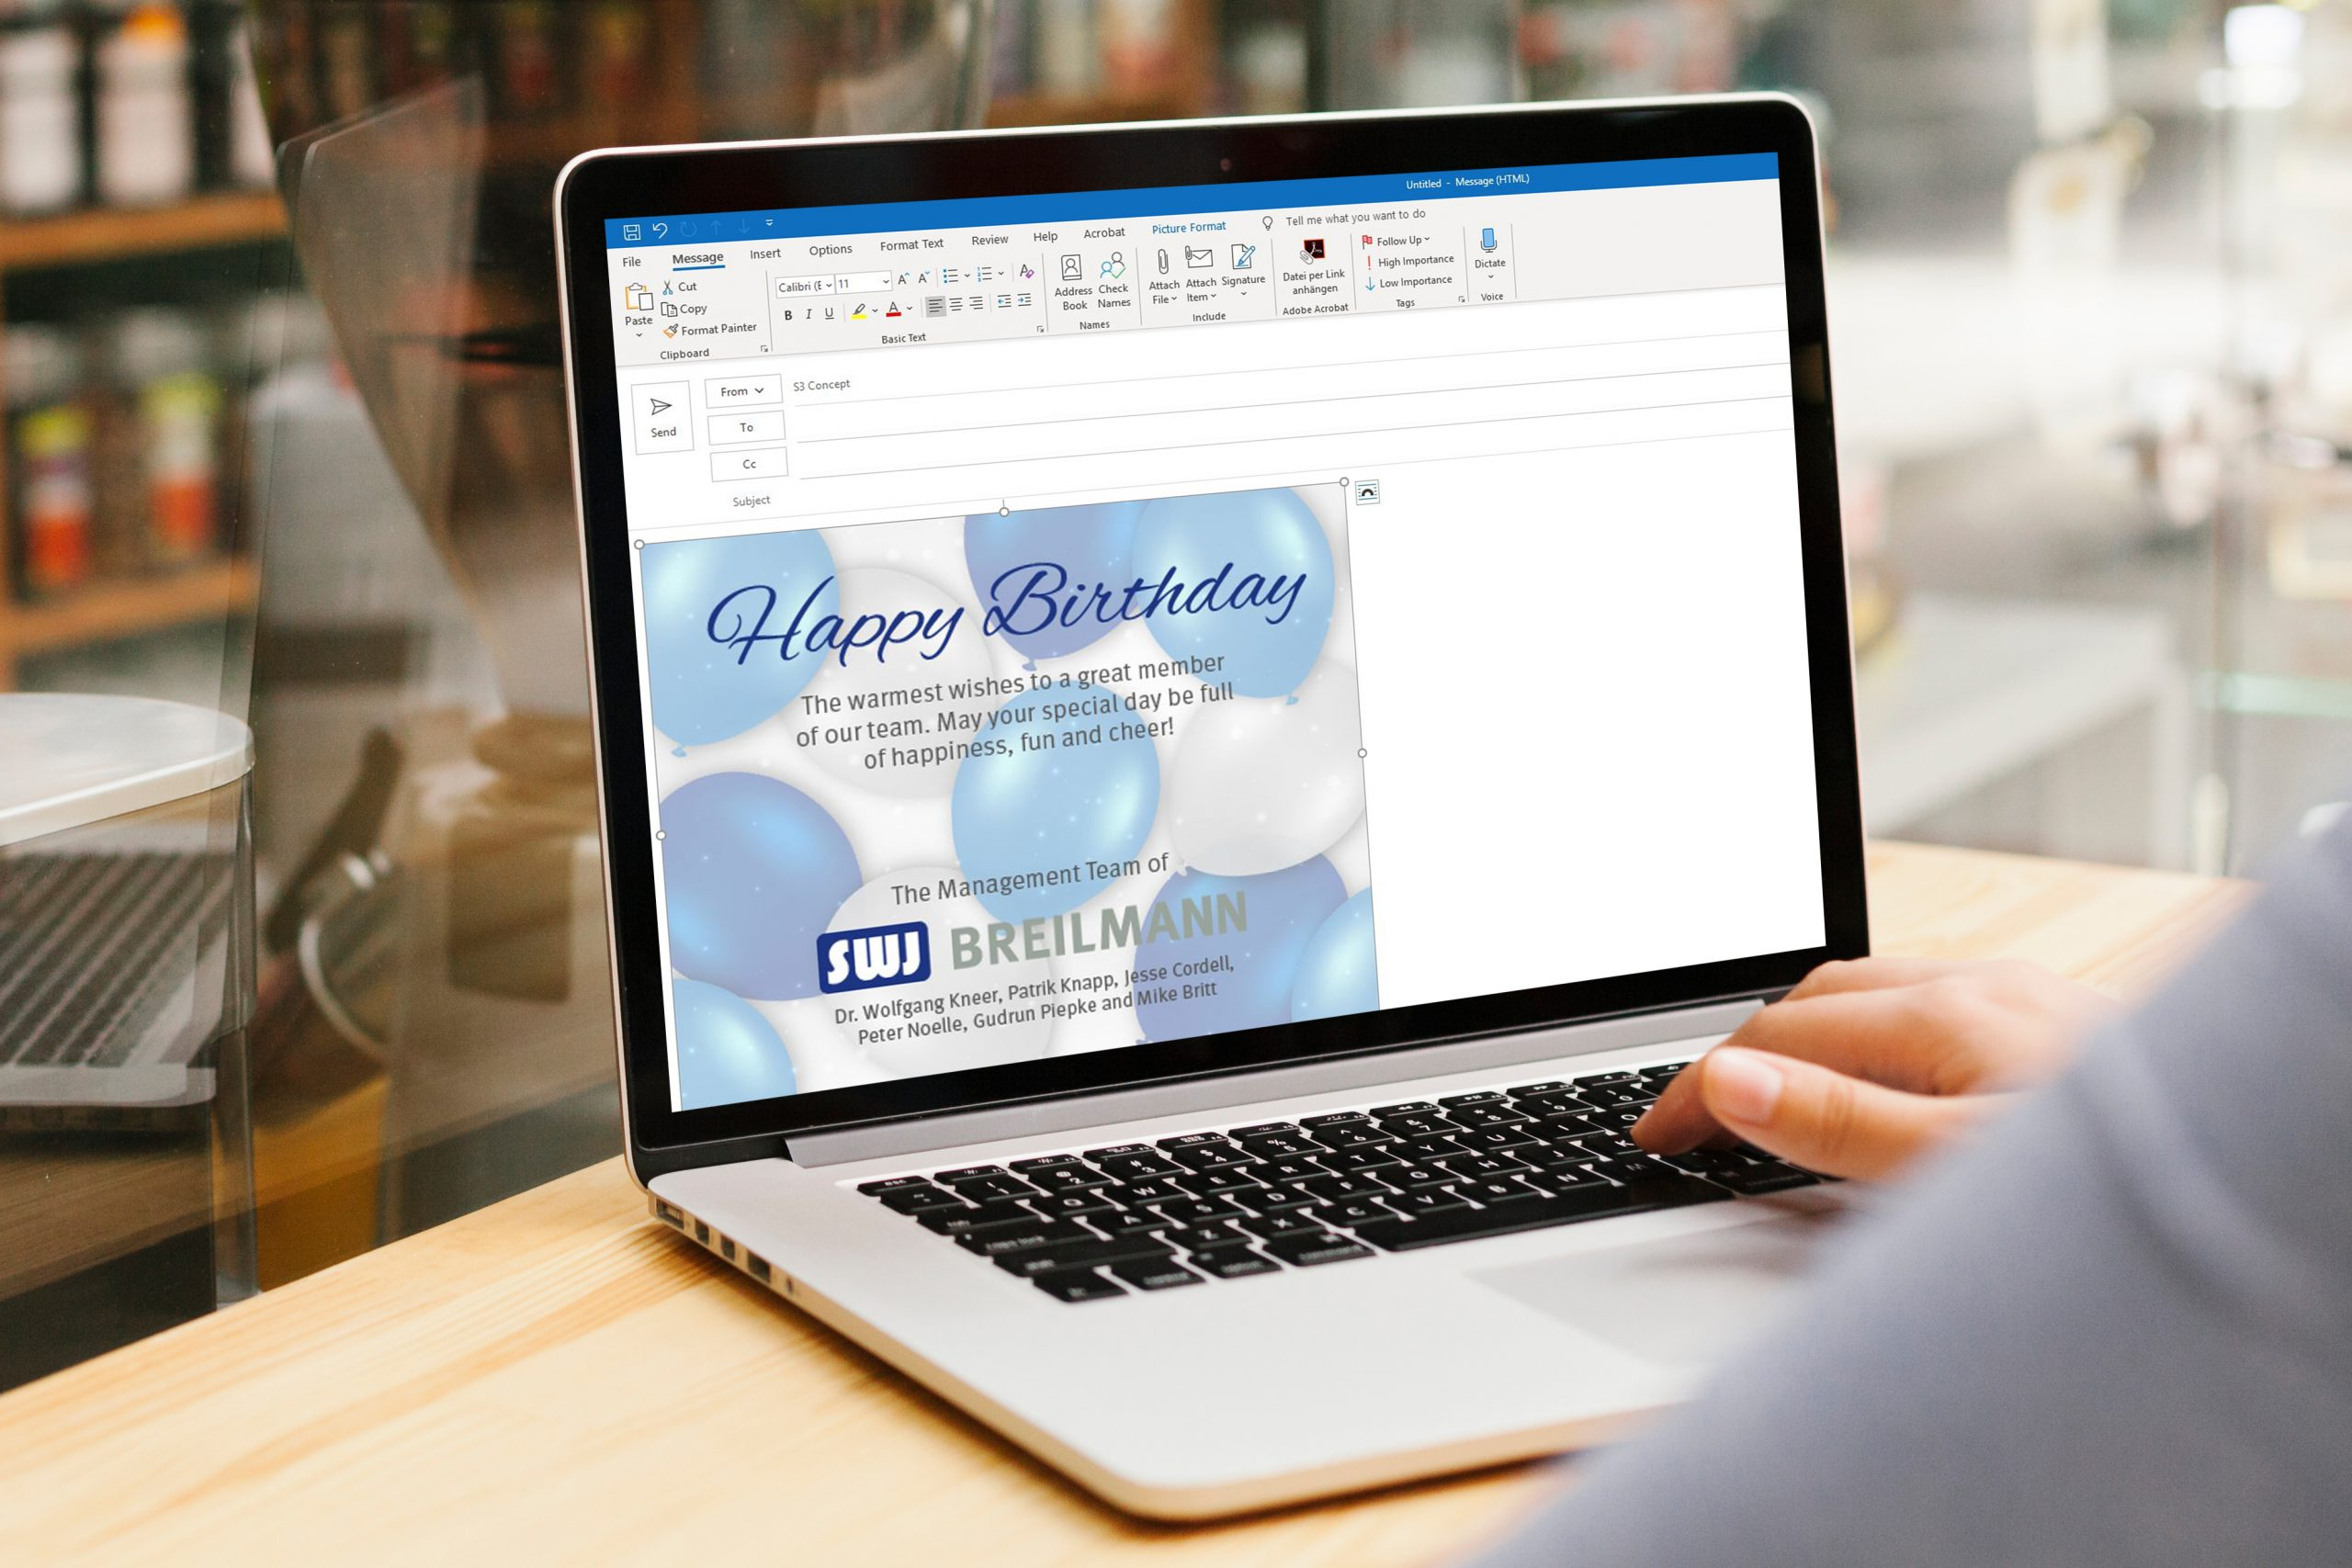 birthday email on laptop screen on desk